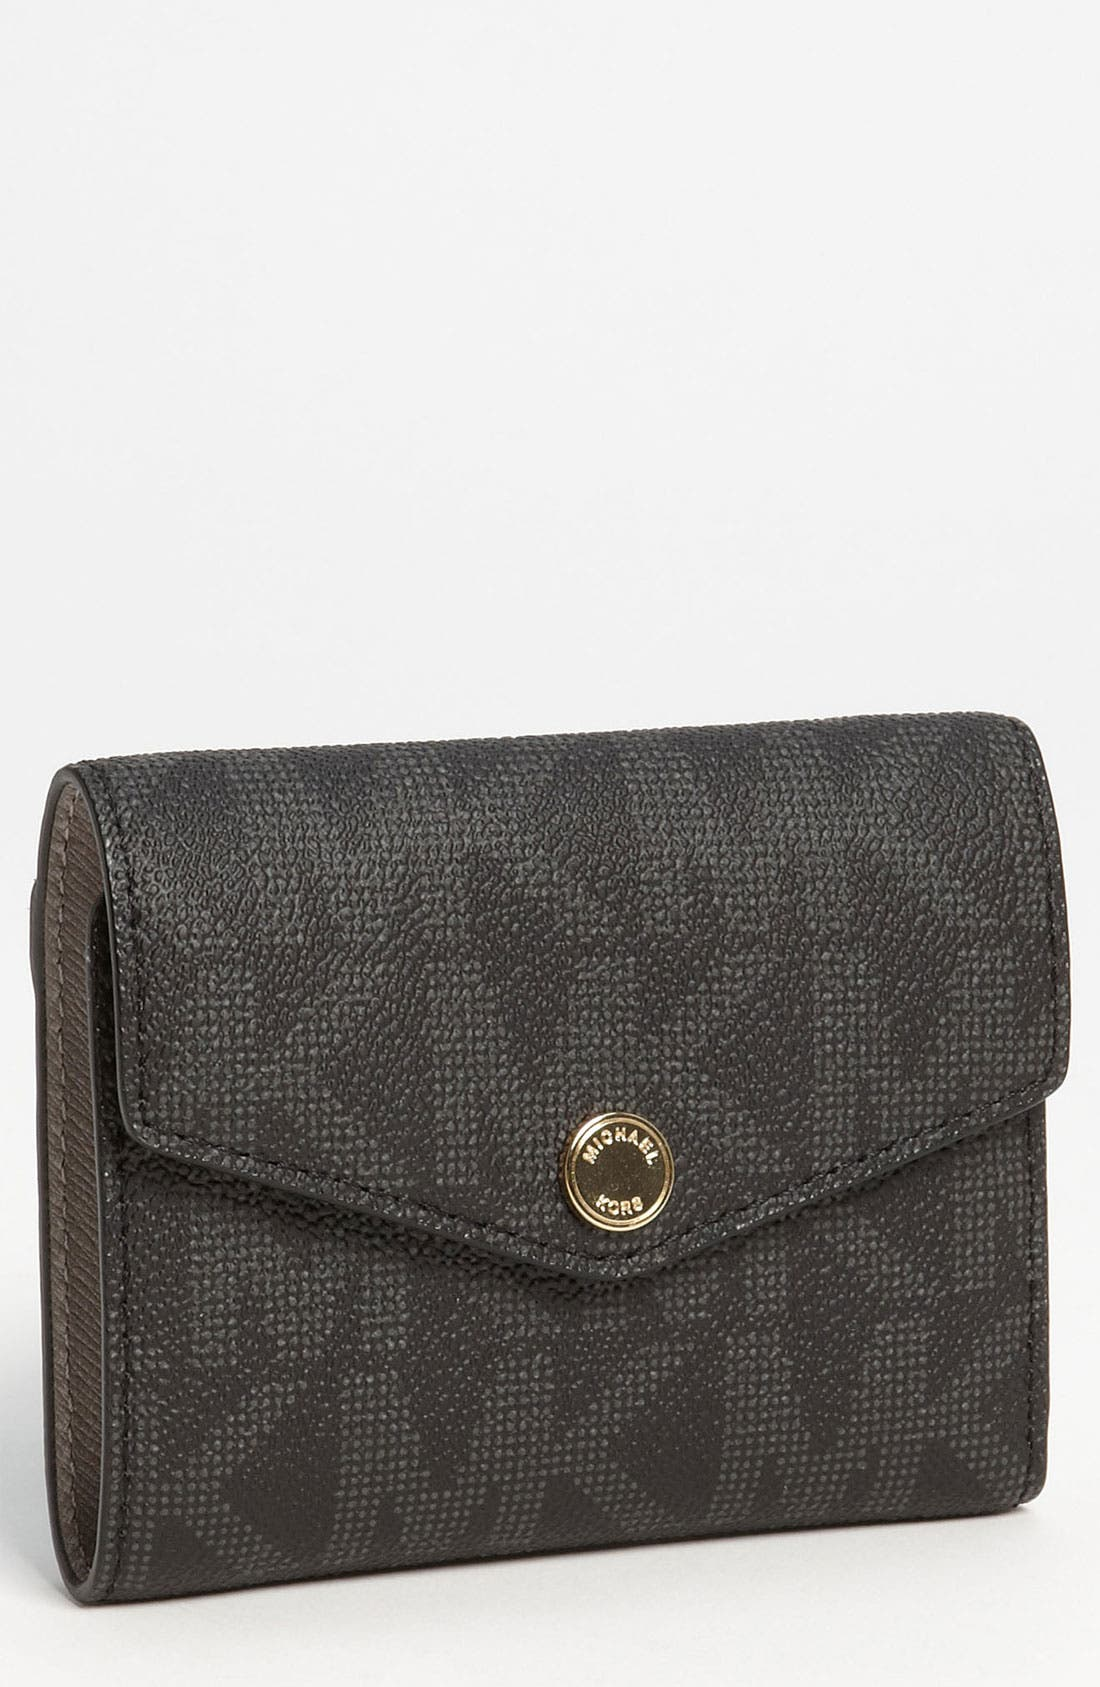 Main Image - MICHAEL Michael Kors 'Medium' Carryall Wallet